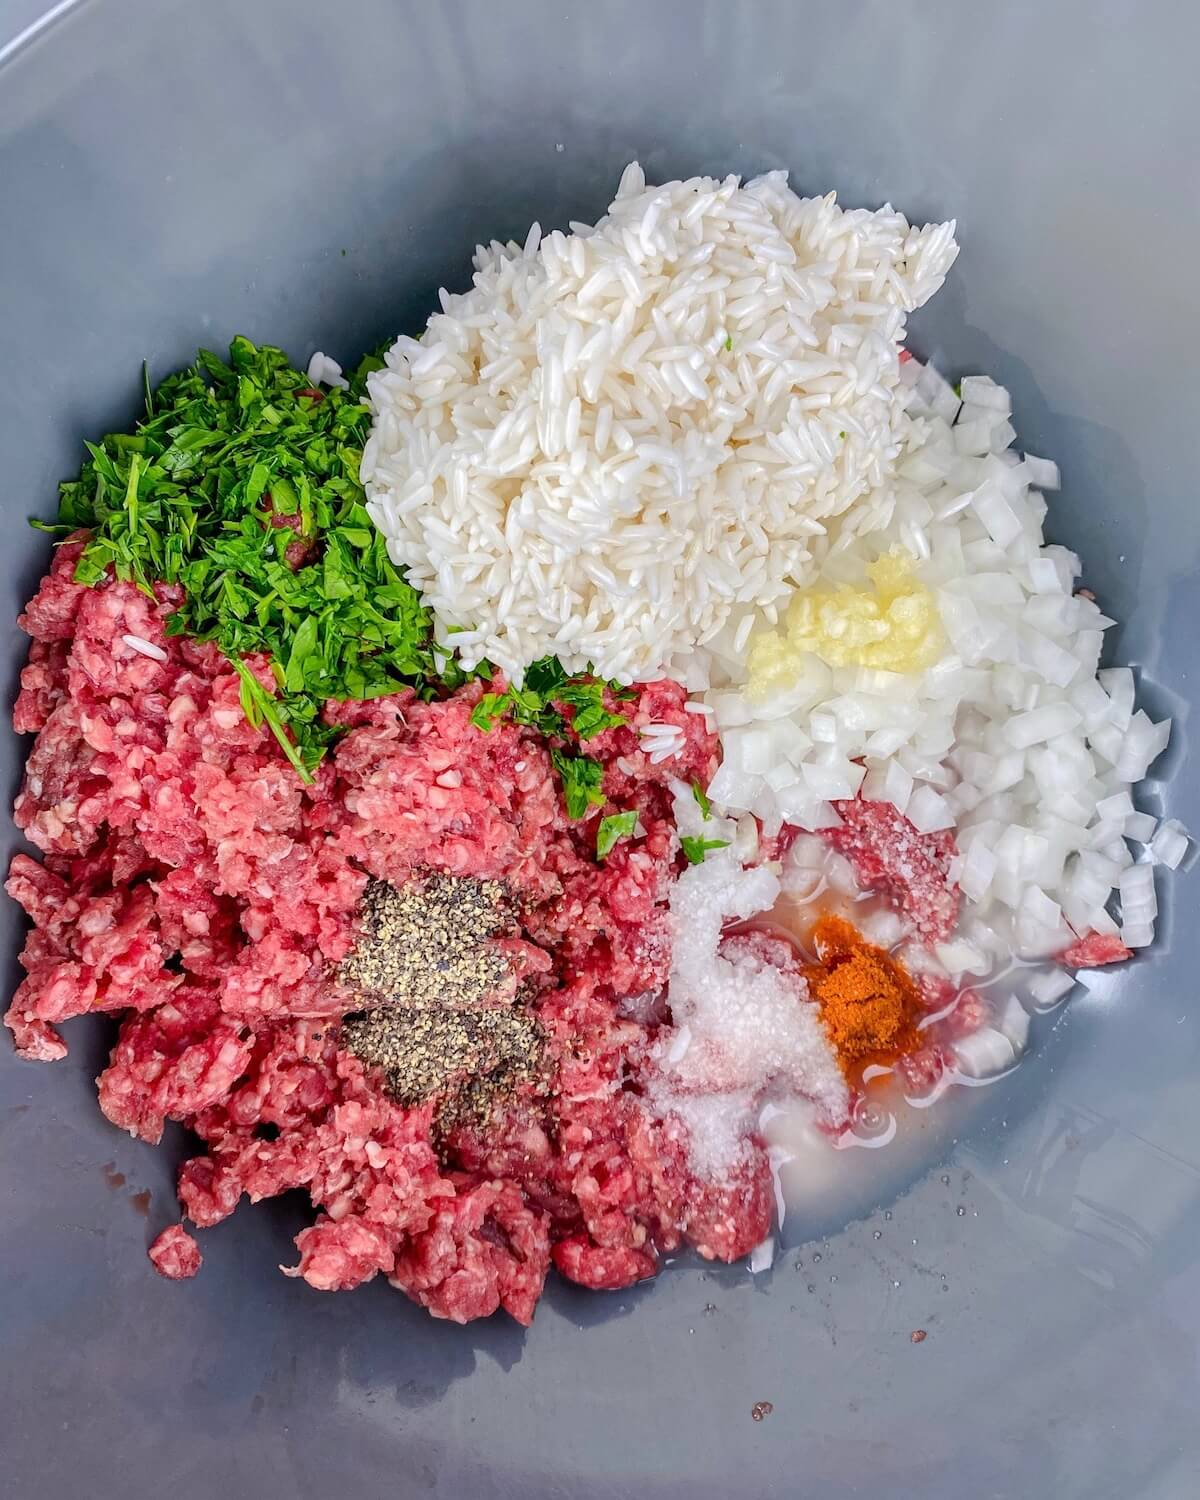 meatball mixture with rice in a bowl